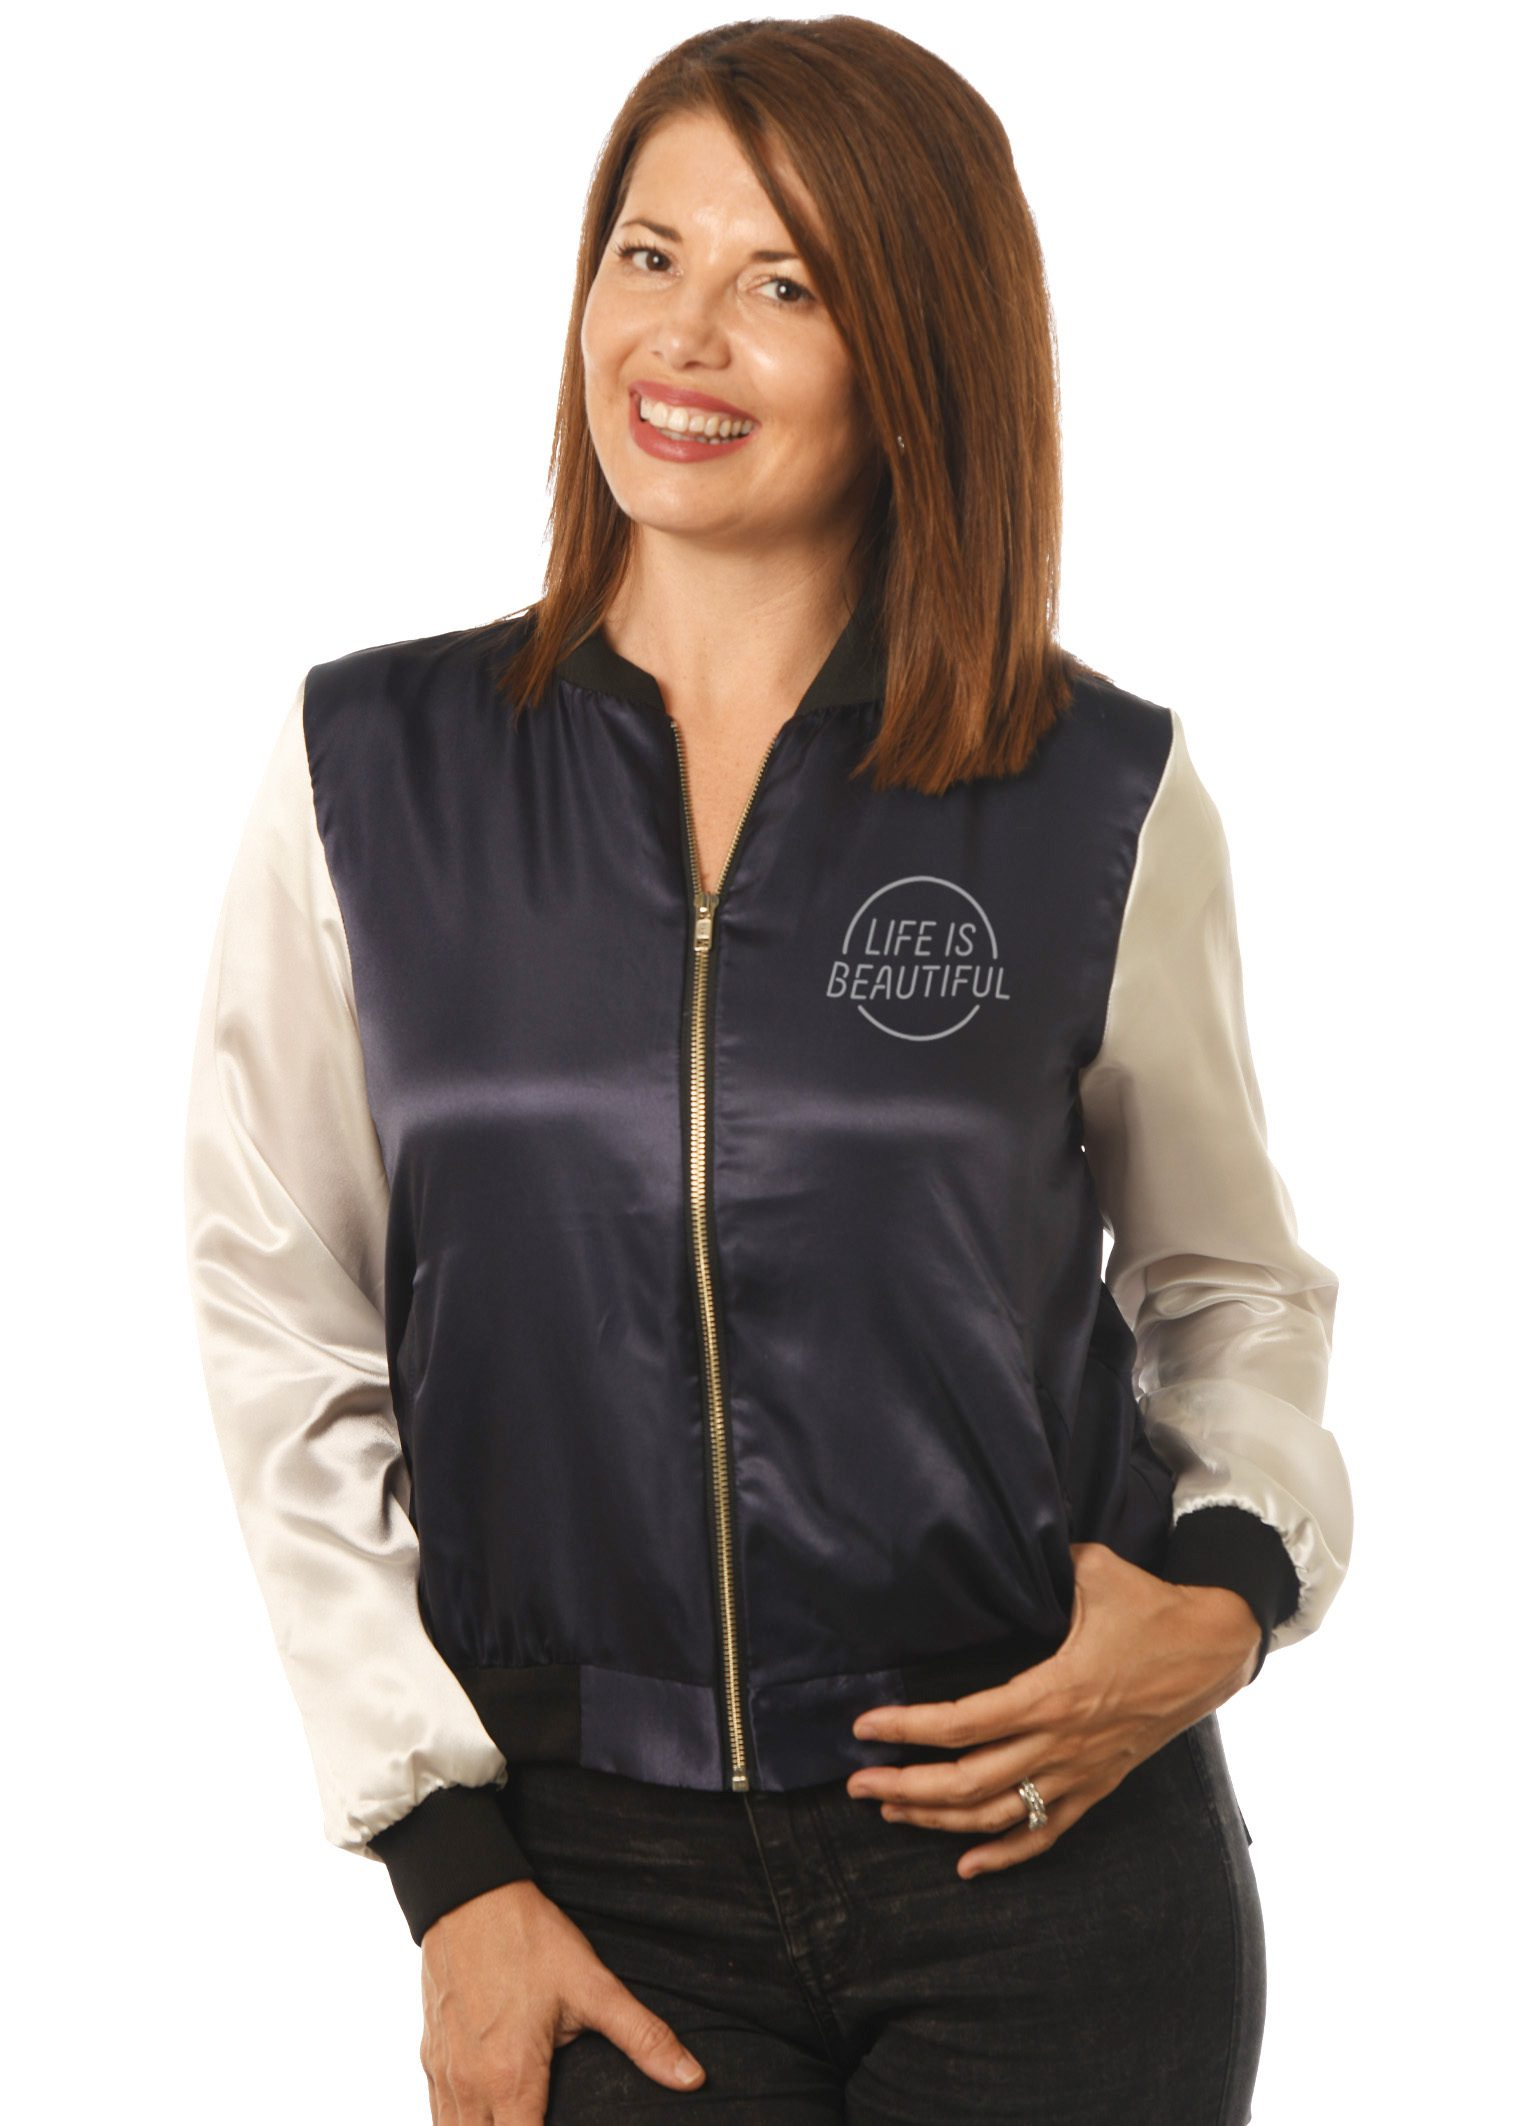 GG-905 Women's Satin Baseball -Front LIB